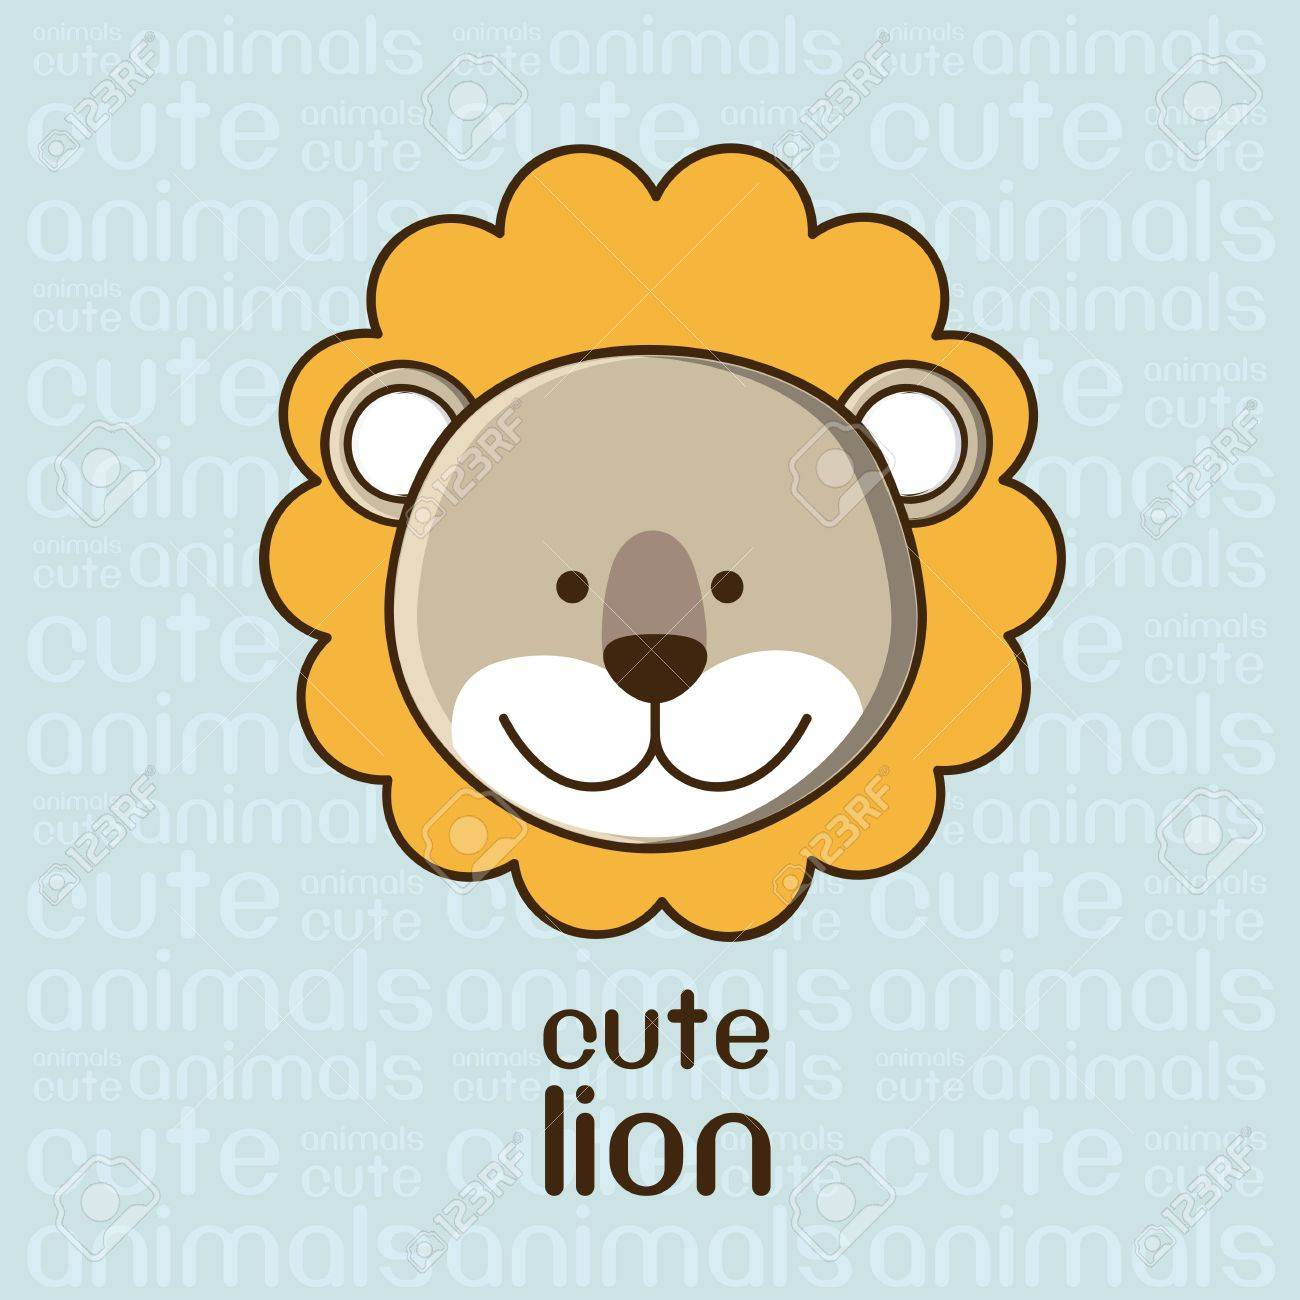 Illustration of a cute lion background, illustration Stock Vector - 15191166